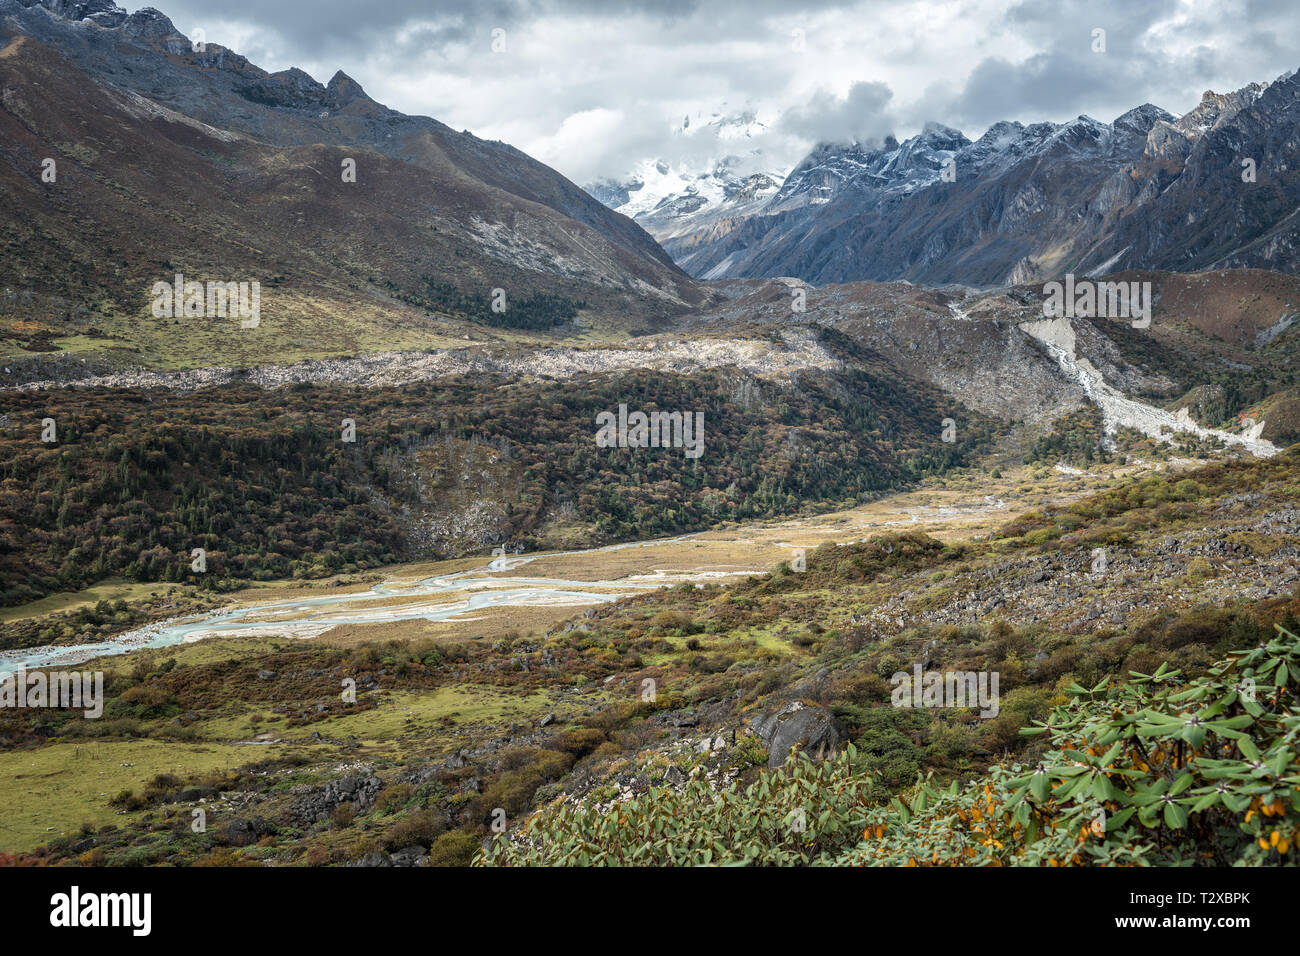 Valley between the village of Woche and Thrika camp, Gasa District, Snowman Trek, Bhutan - Stock Image